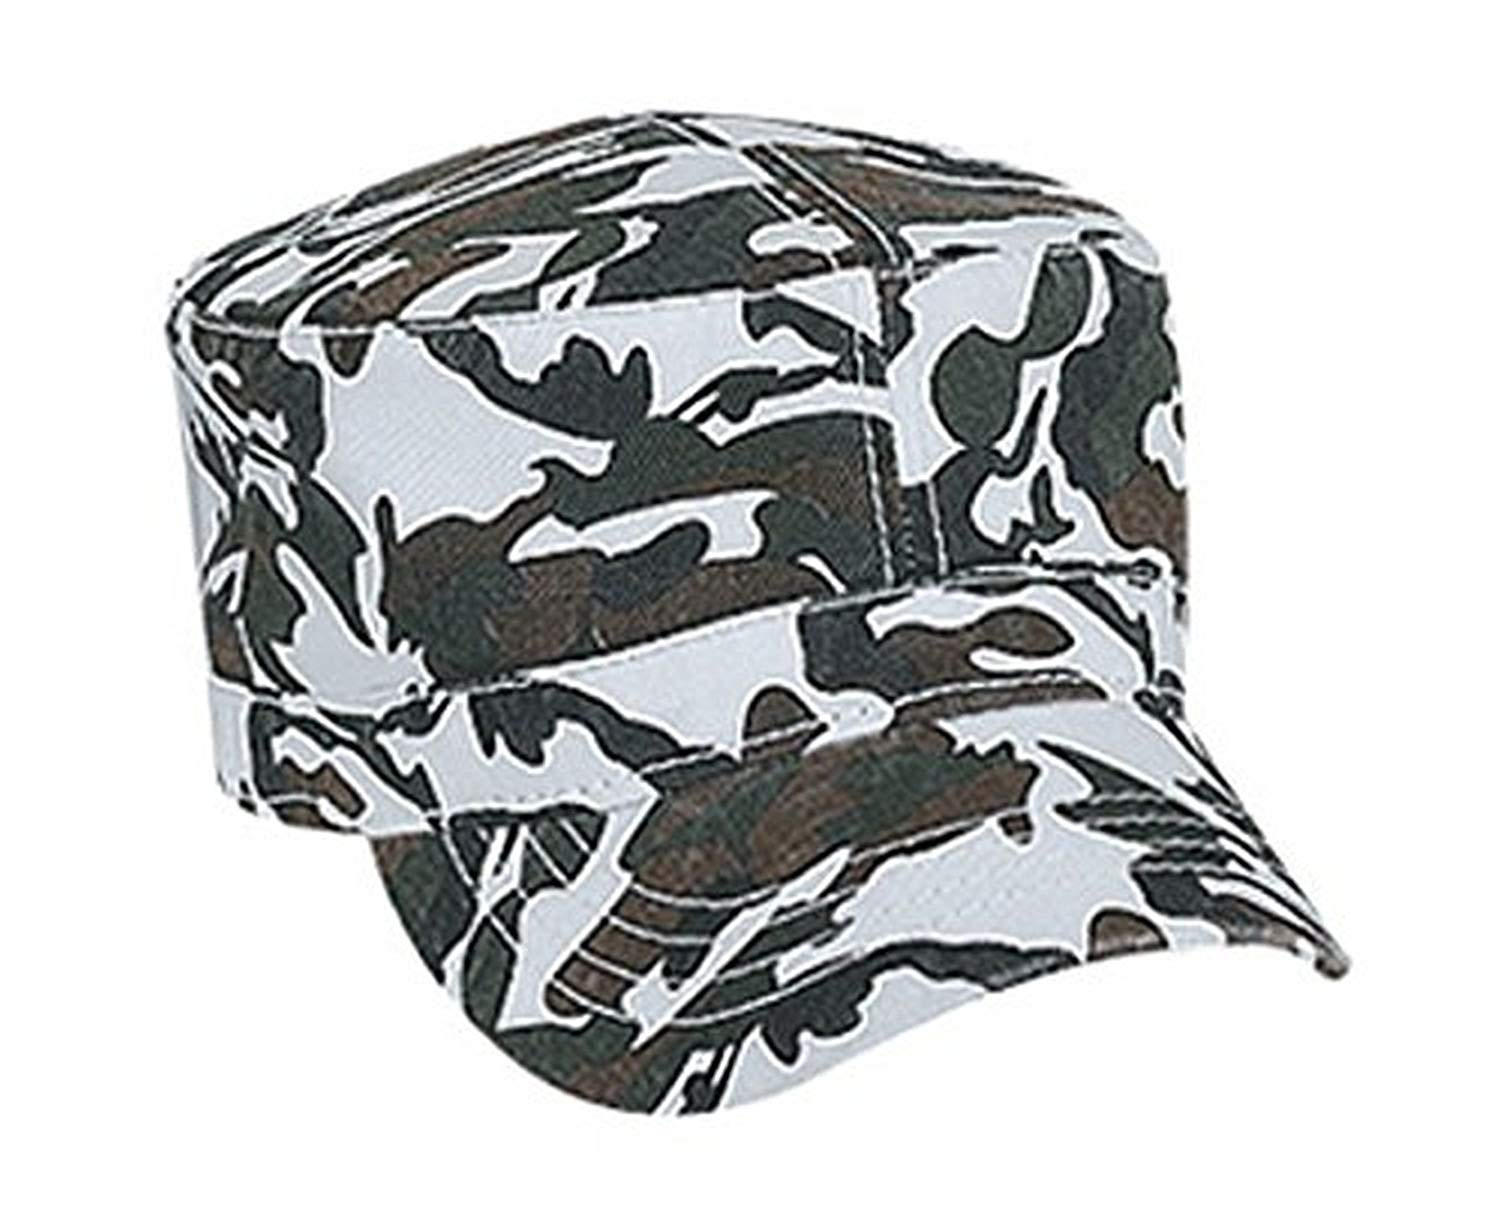 Hats & Caps Shop Camouflage Superior Garment Washed Cn Twill Military Style Caps - By TheTargetBuys